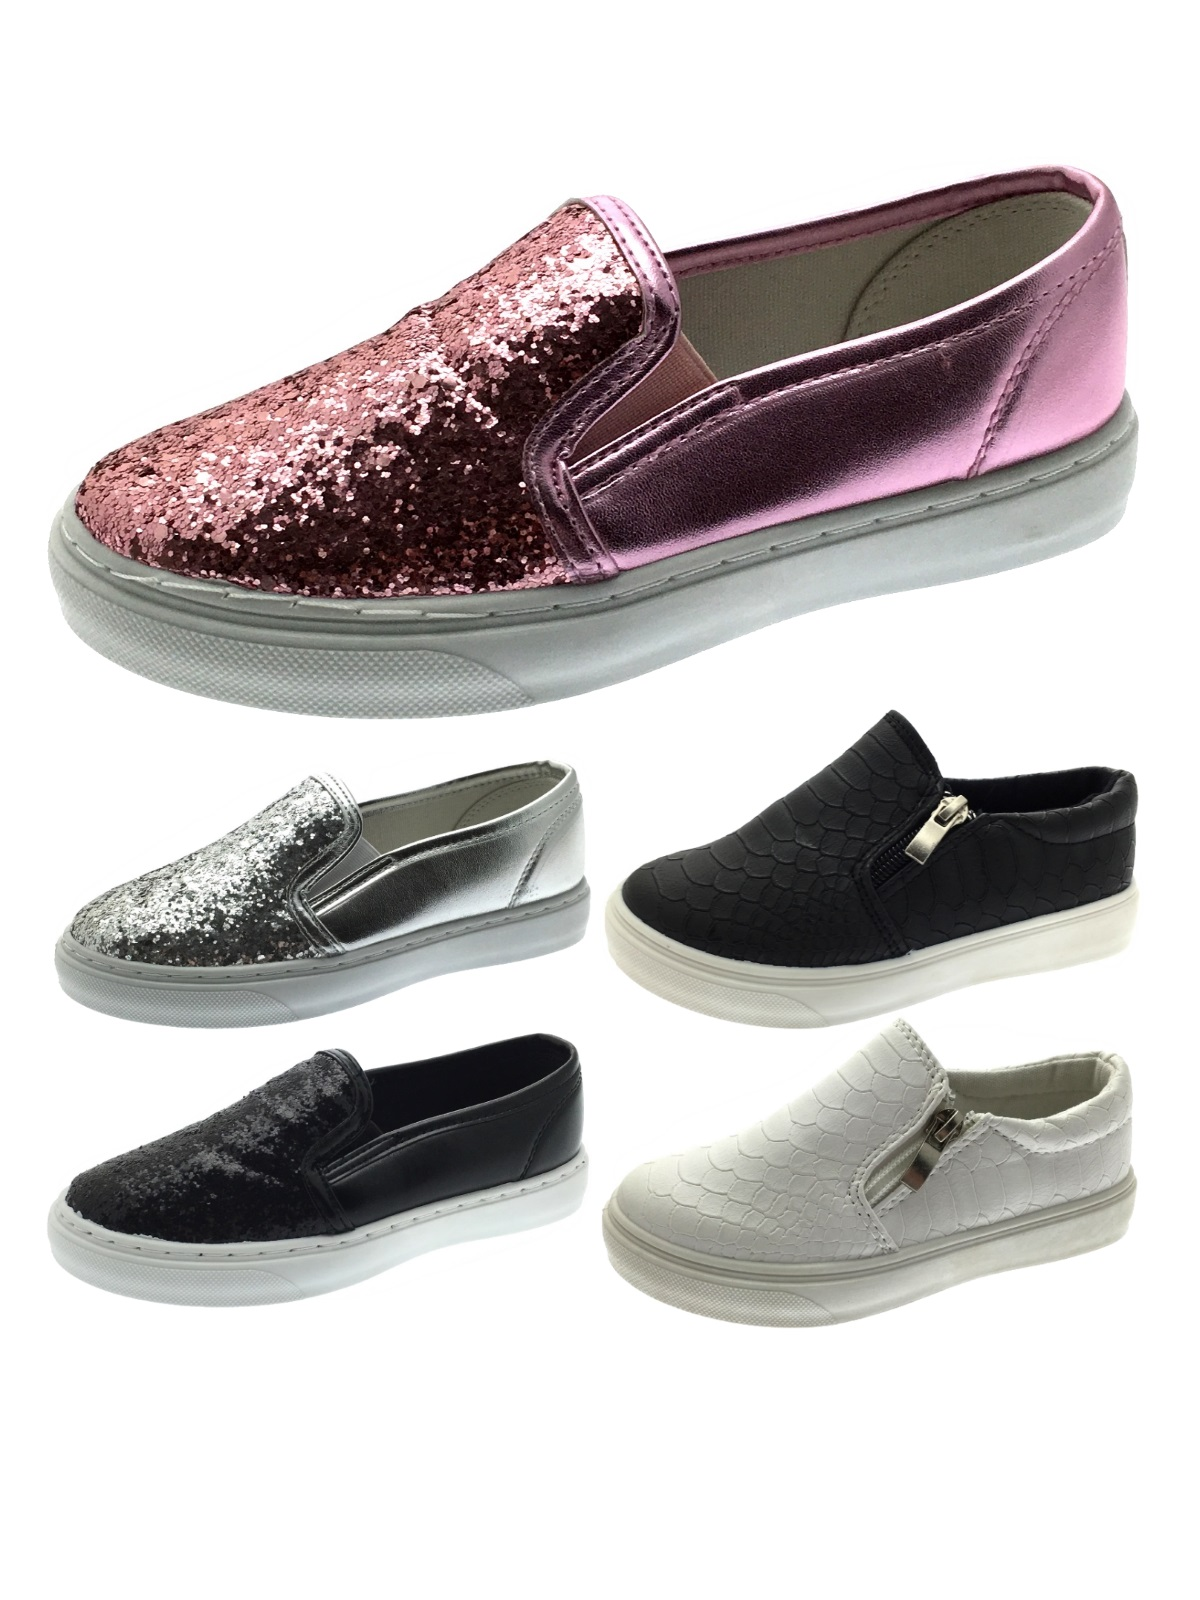 Girls Glitter Skate Pumps Kids Slip On Trainers Flat Plimsolls Shoes With Zips